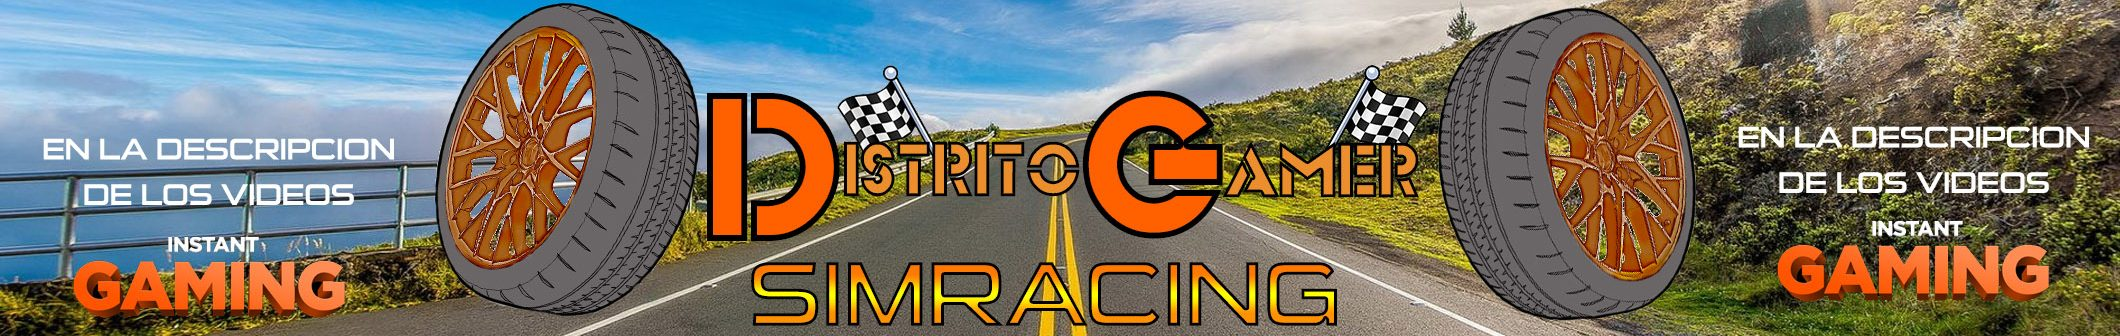 Distritogamer Simracing Youtube Español